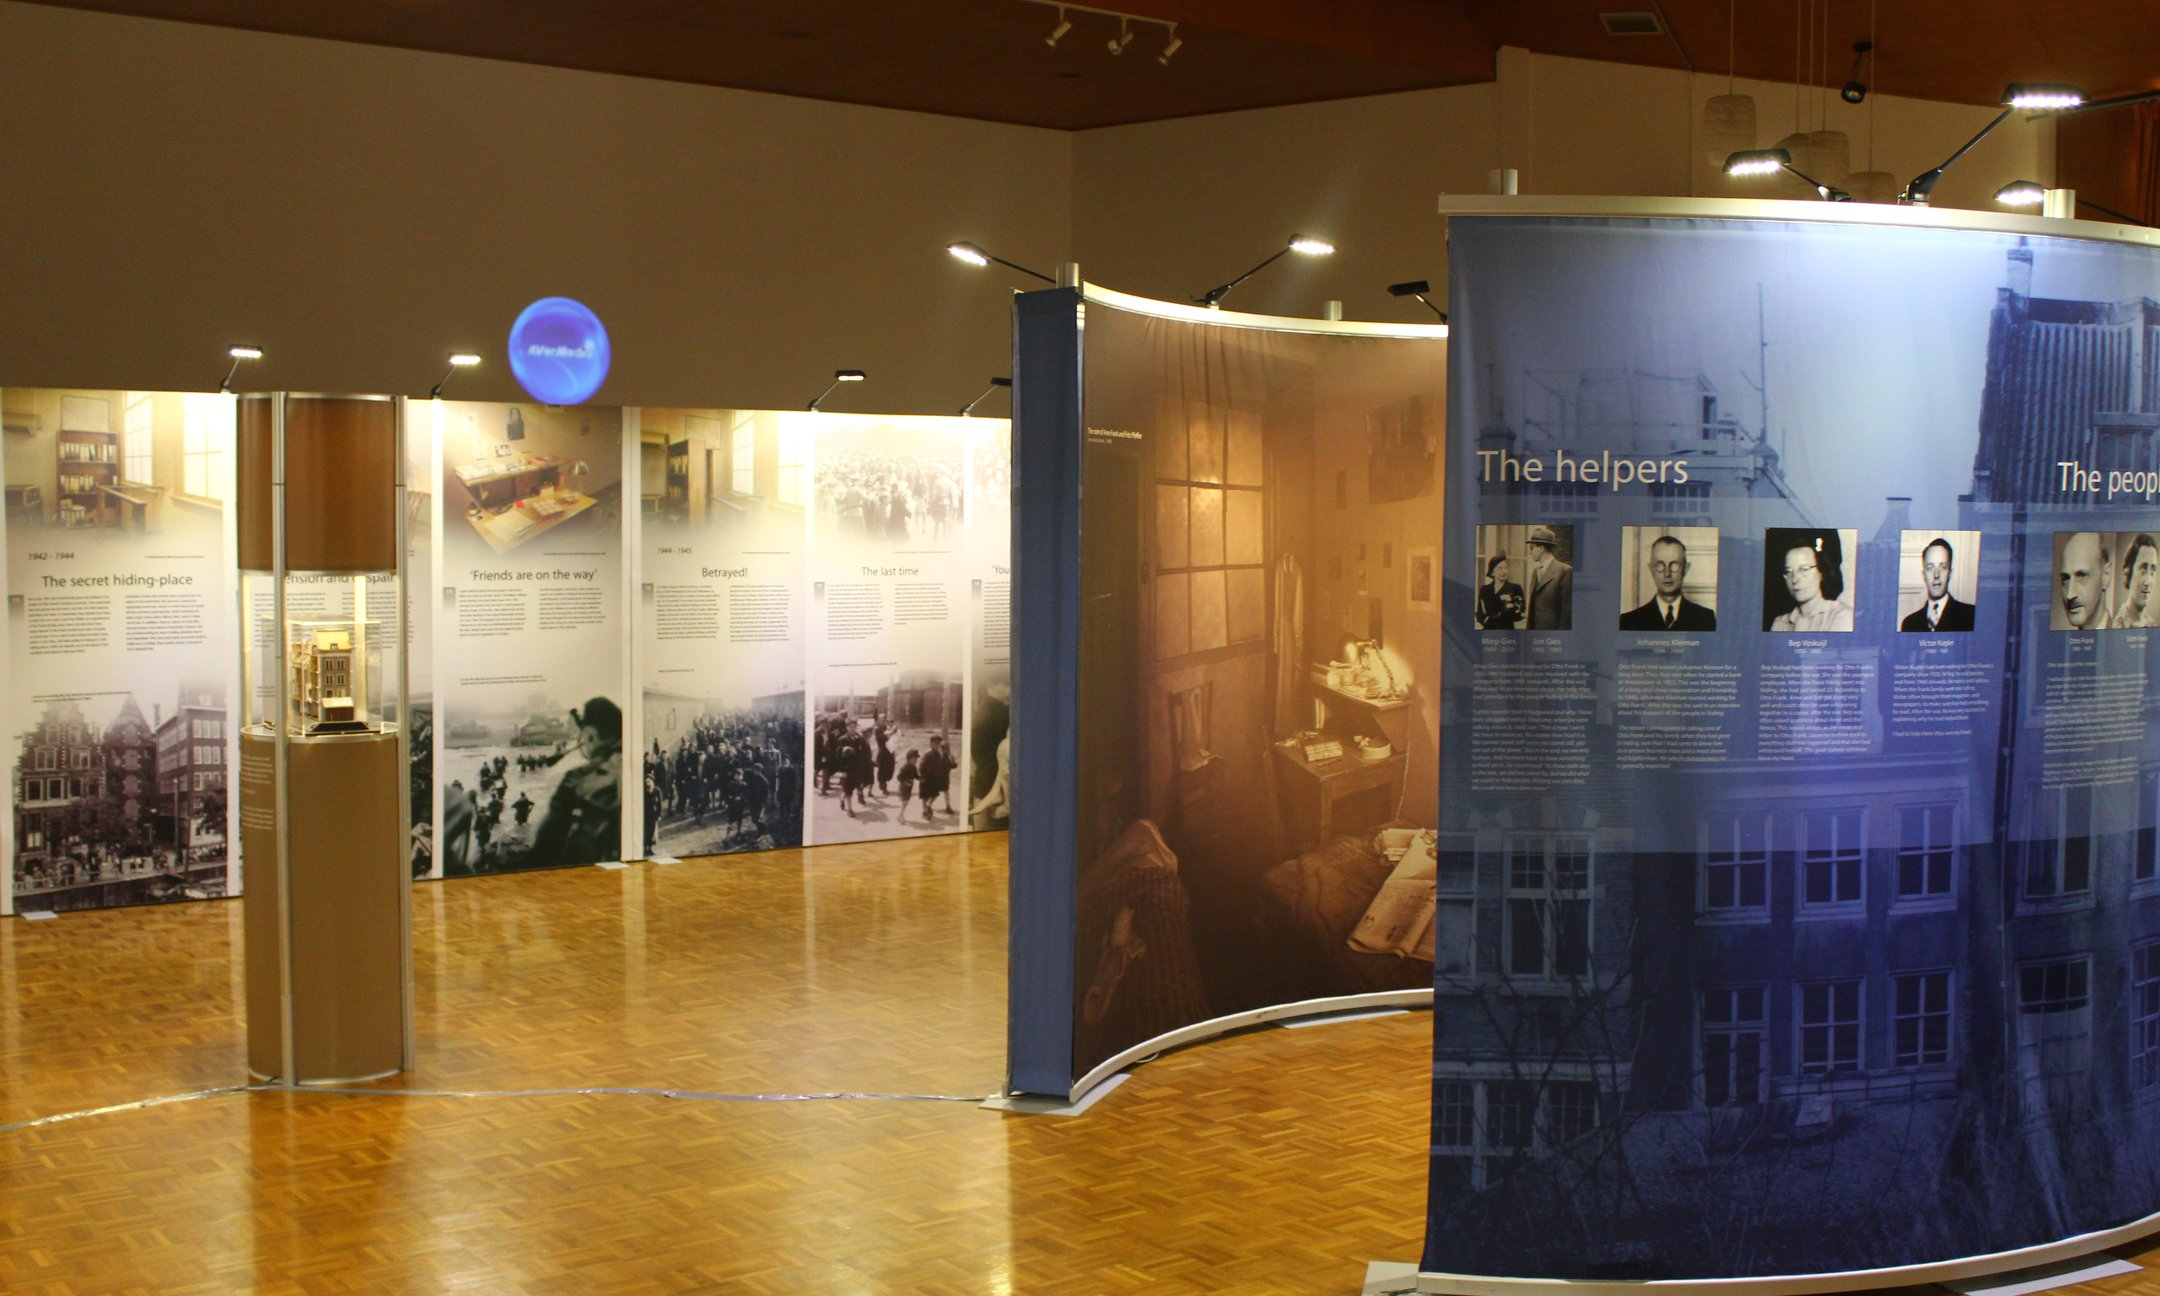 Exhibition 'Let me be myself, the life story of Anne Frank' in Melbourne, Australia